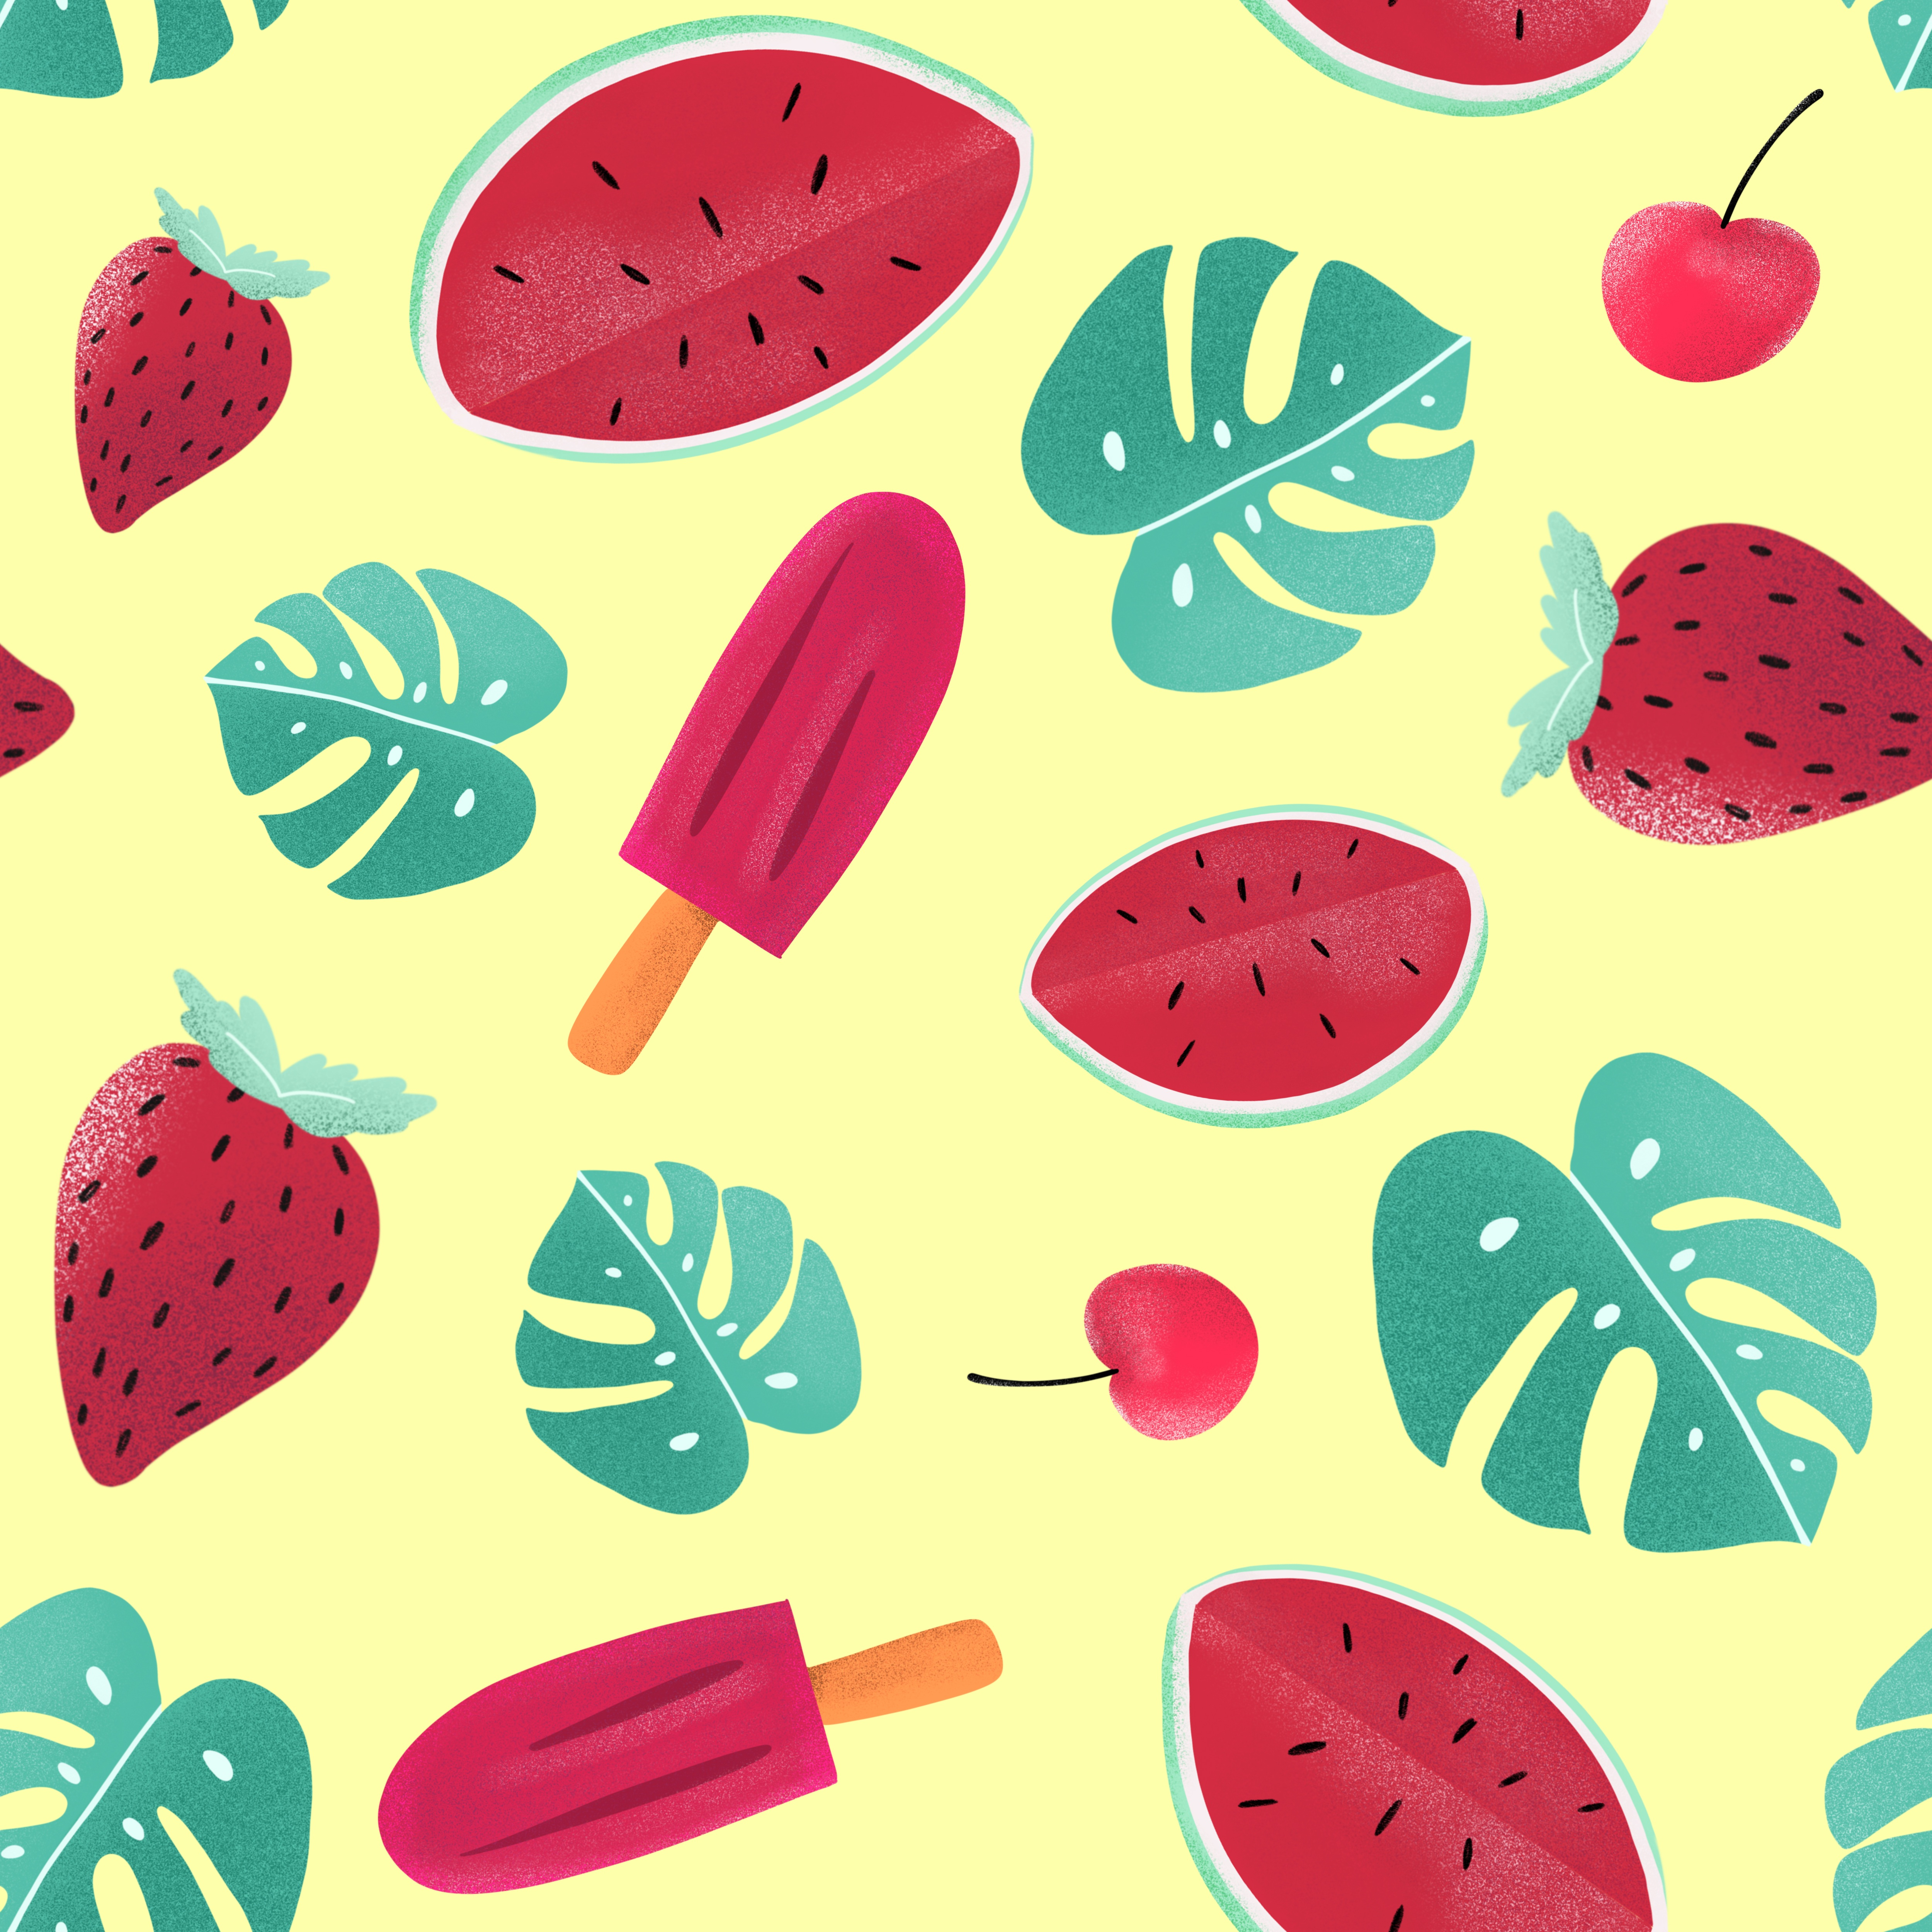 121706 download wallpaper Textures, Texture, Ice Cream, Watermelon, Strawberry, Leaves, Patterns screensavers and pictures for free